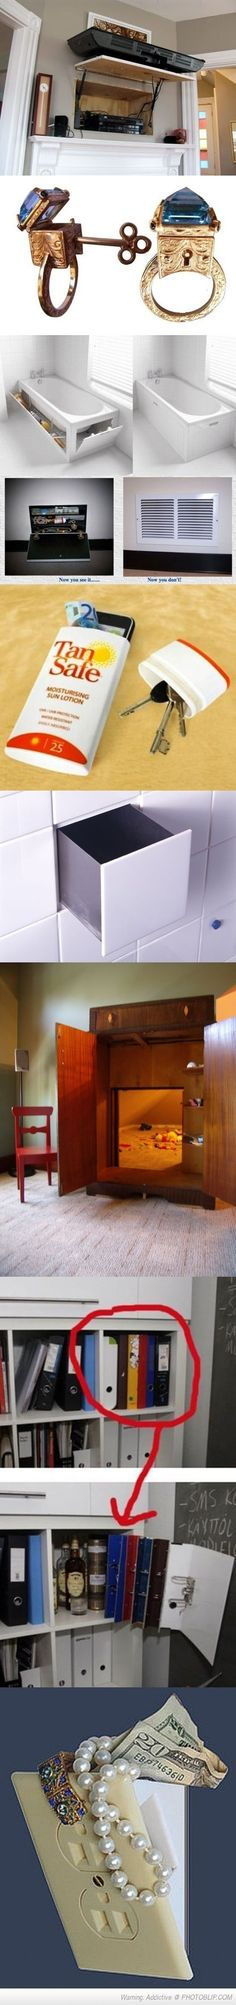 awesome hiding places :)